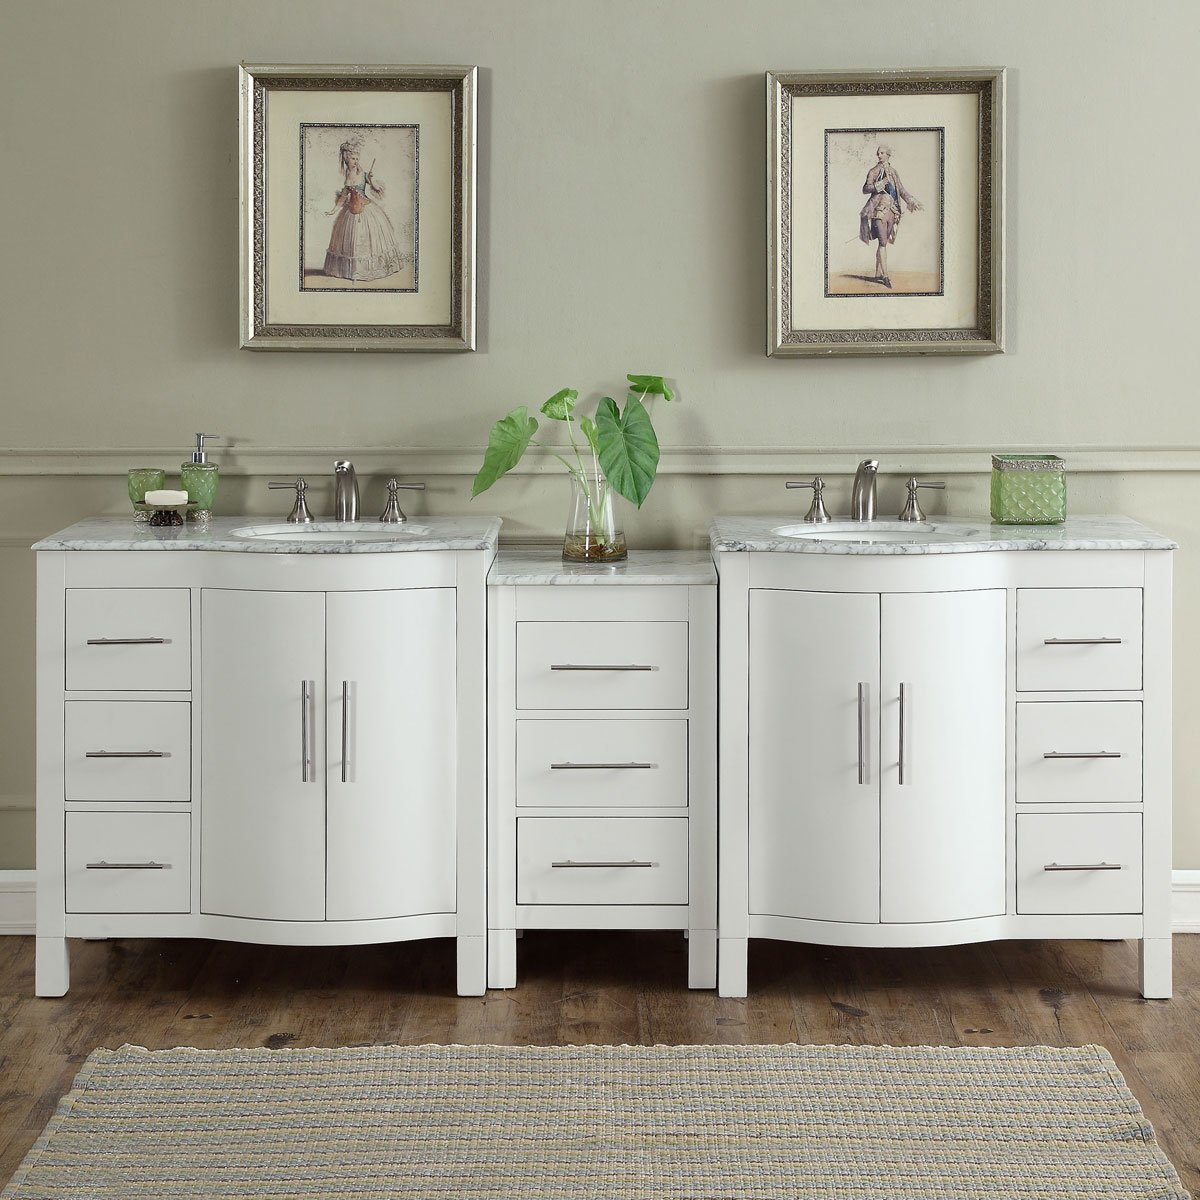 89 inch Double Sink Contemporary Bathroom Vanity White Finish Carrara Marble Top